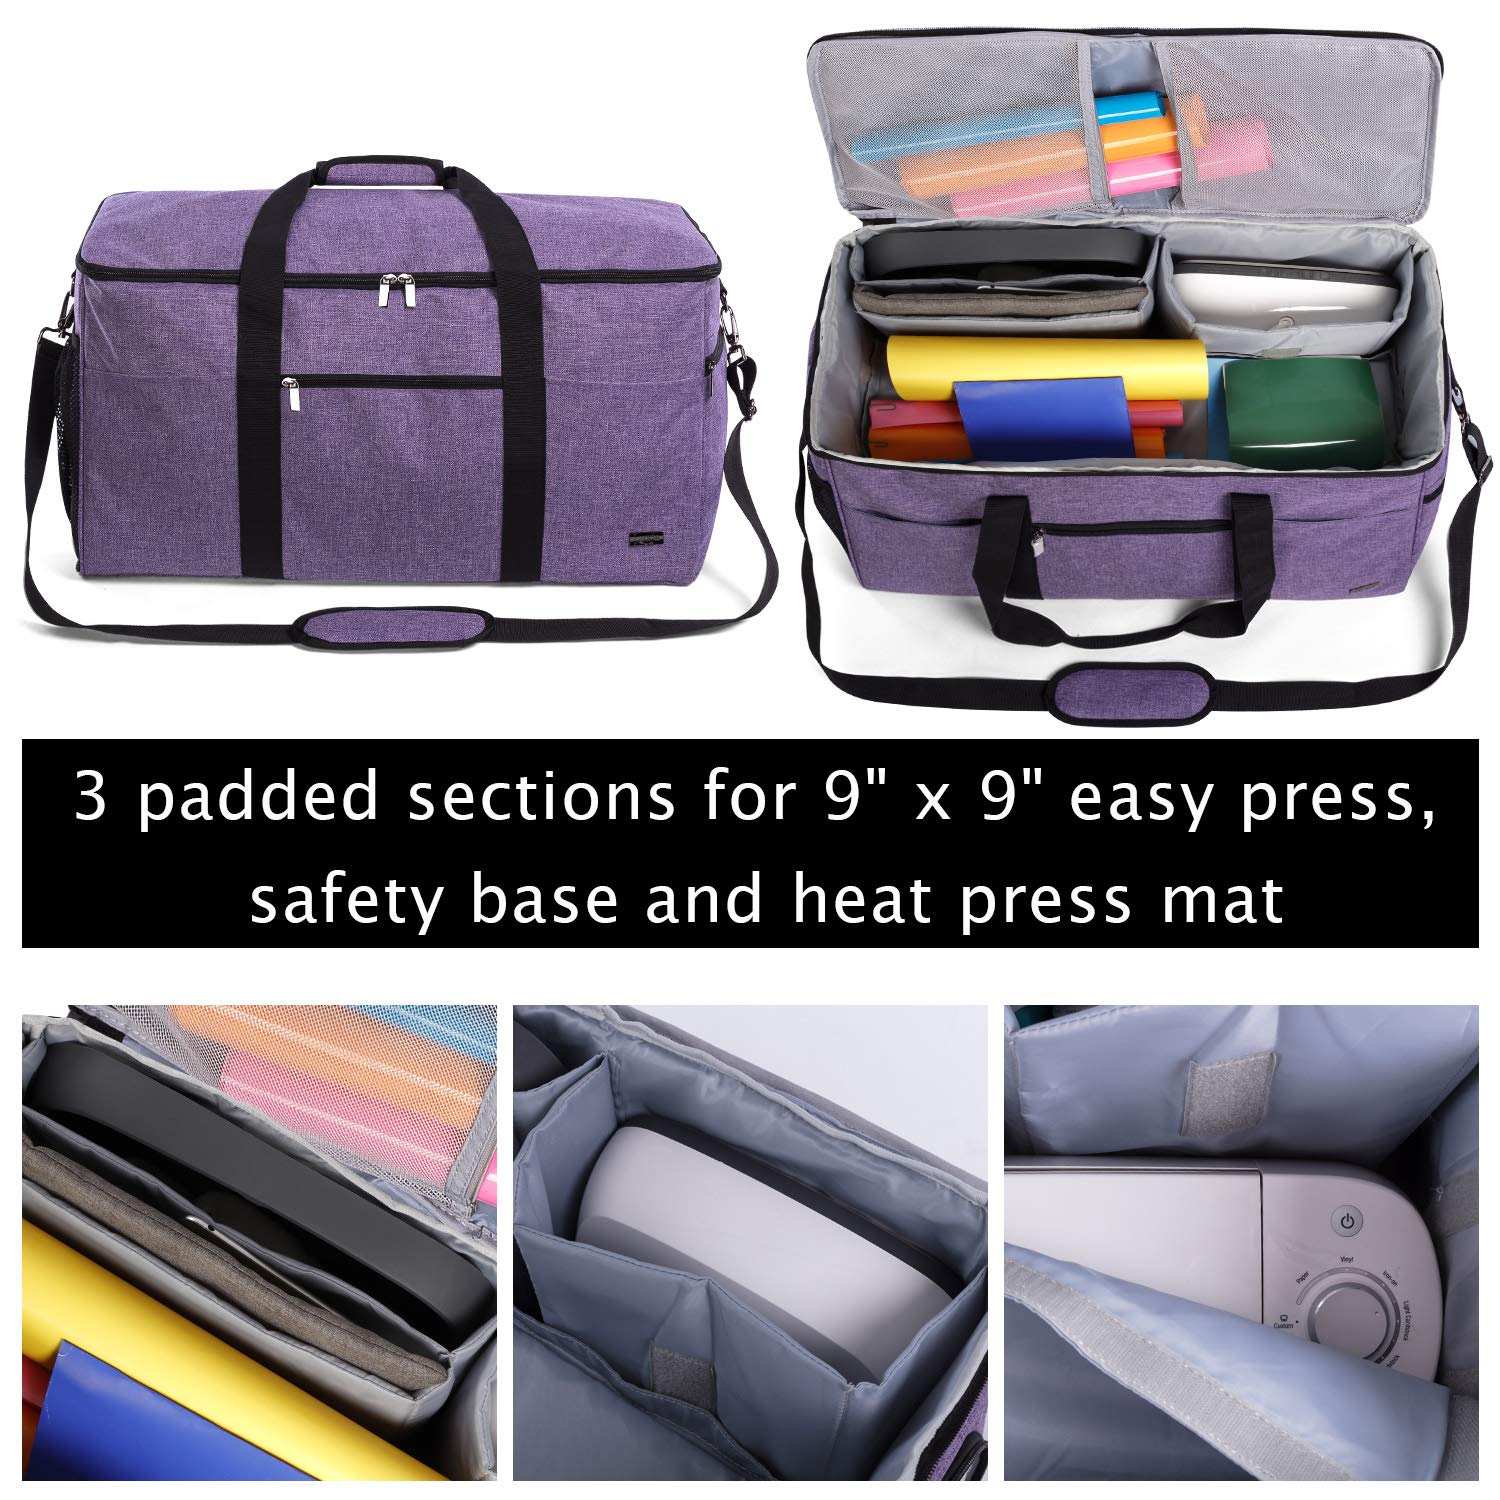 Luxja All-in One Bag for Cricut Die-Cut Machine and Cricut Easy Press (9 x 9 inches), Carrying Case for Cricut Machine and Supplies, Compatible with Cricut Explore Air and Maker (Patent Pending), Purple